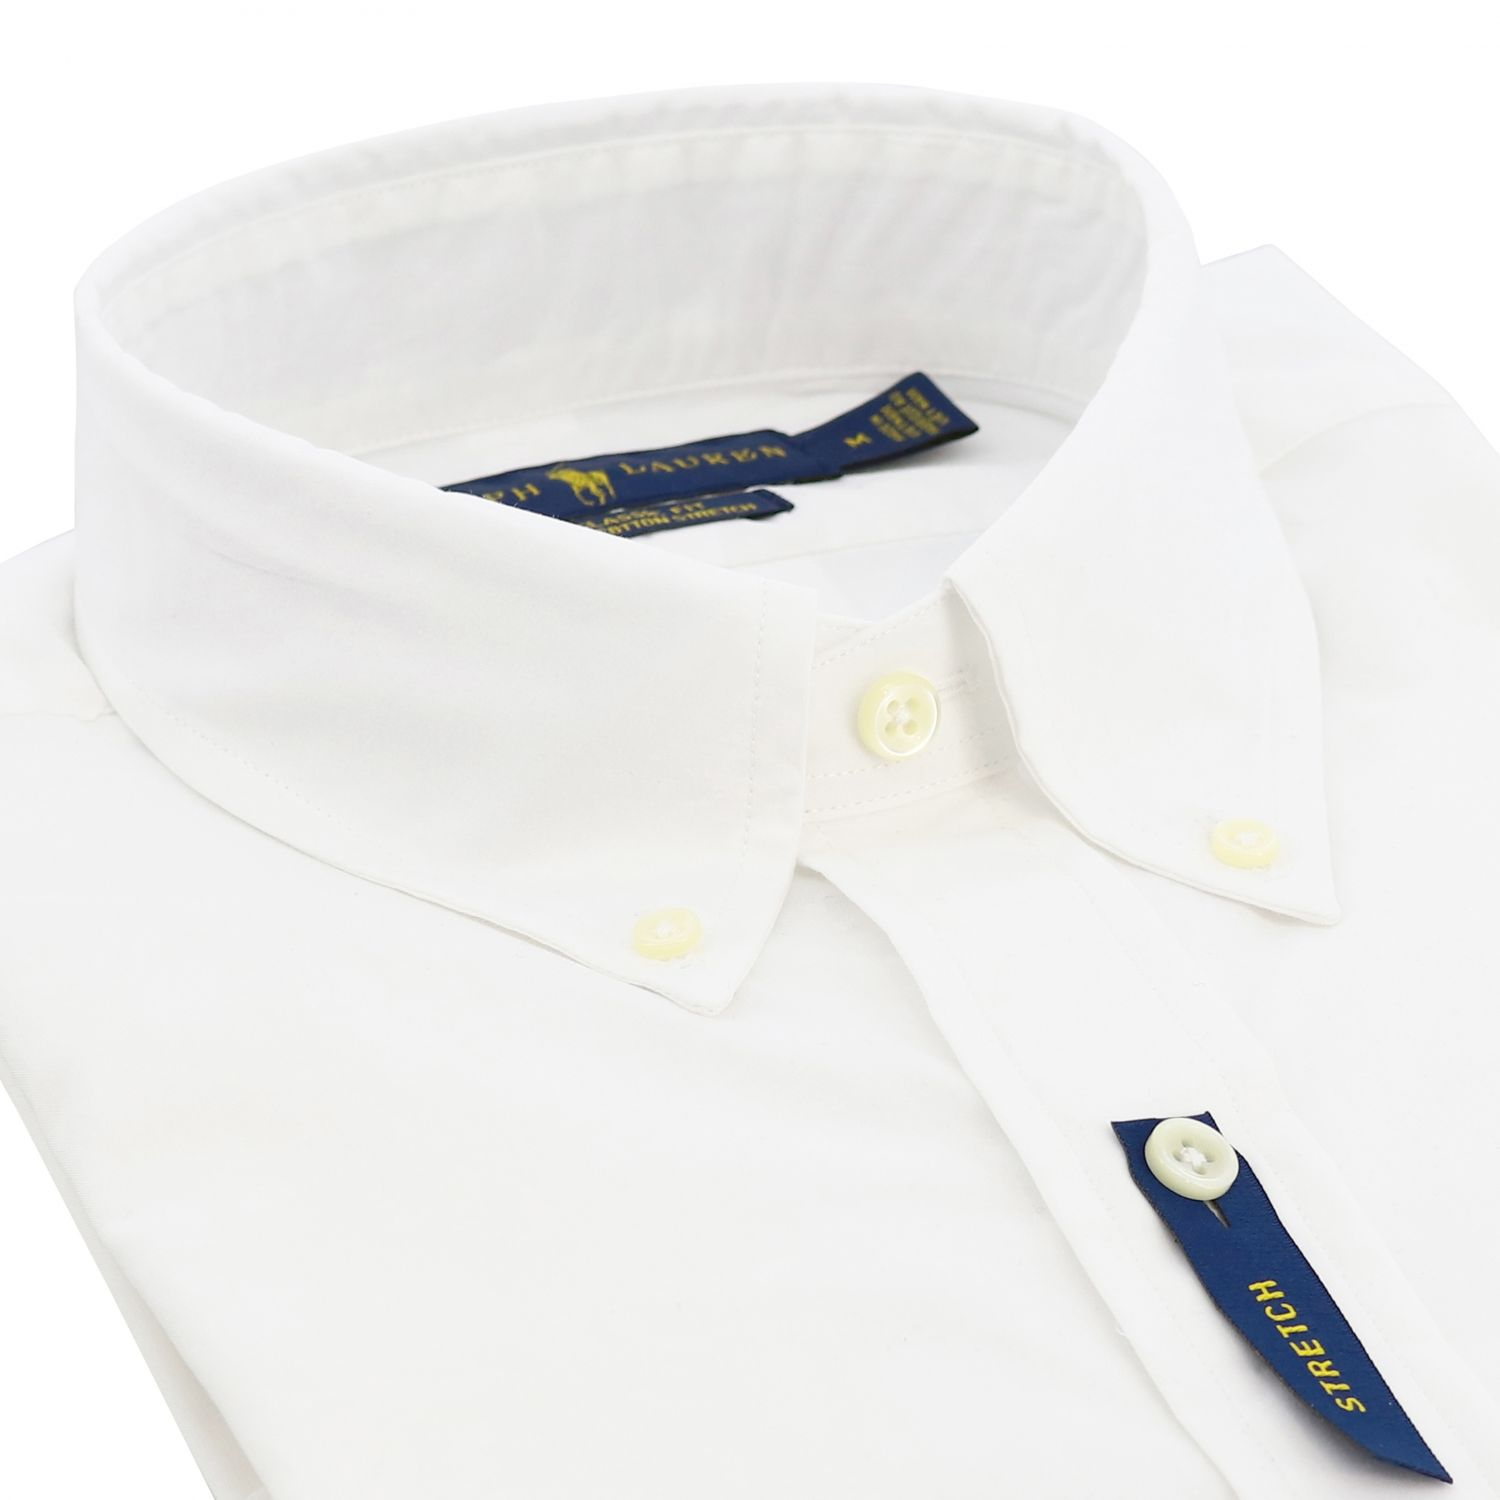 Slim-fit natural stretch shirt with button-down collar and Polo Ralph Lauren logo white 2